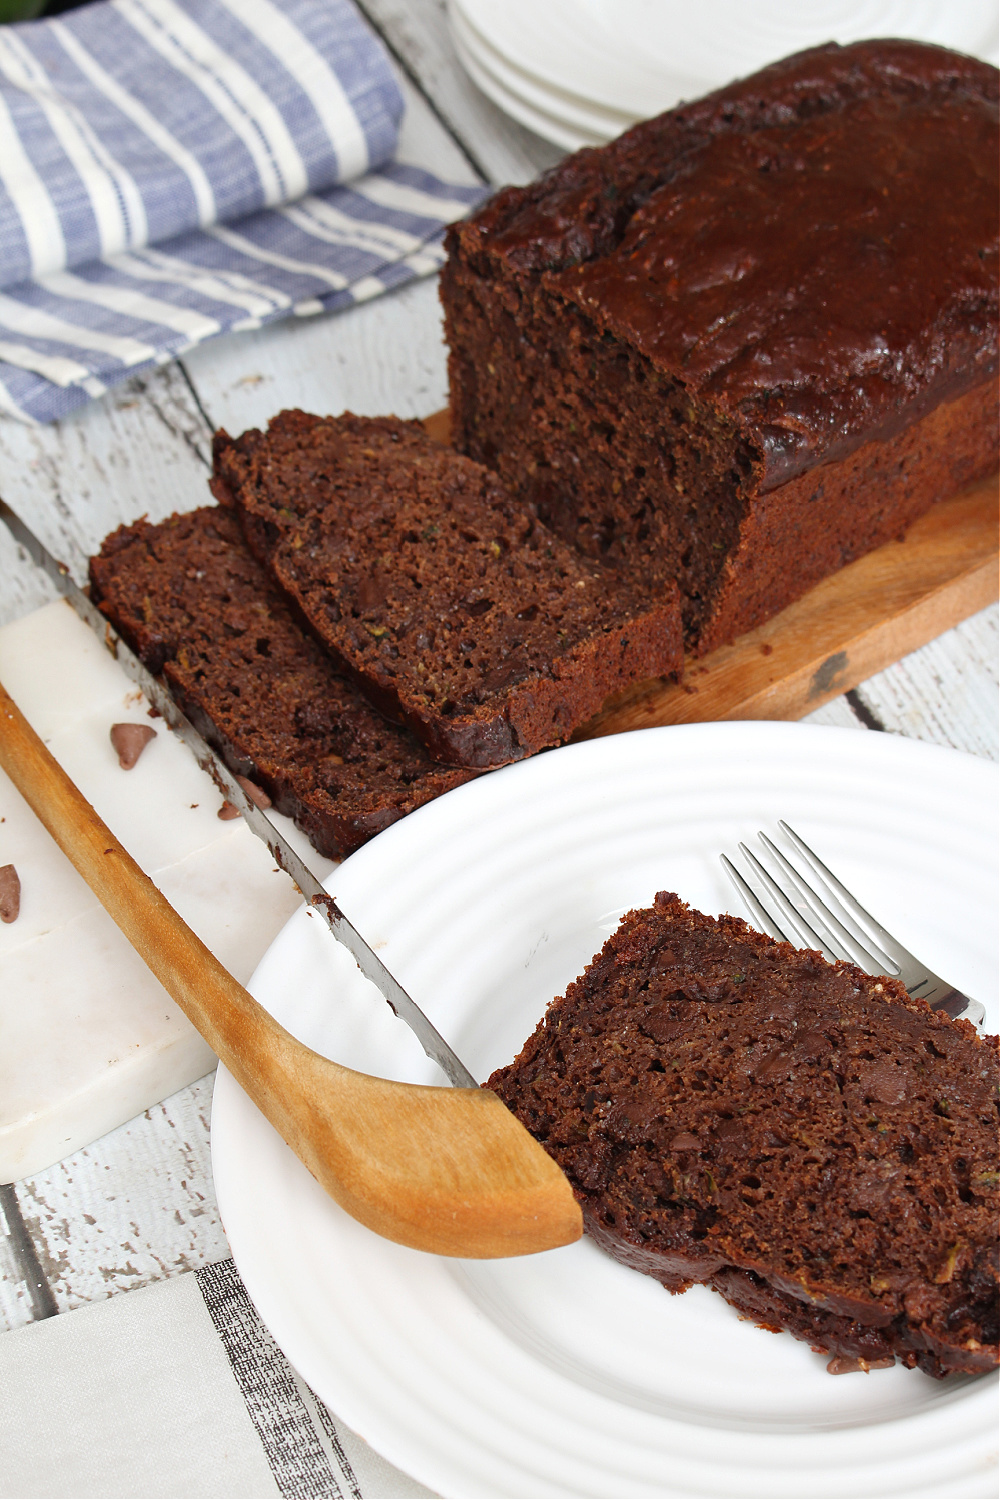 Slices of double chocolate zucchini loaf.